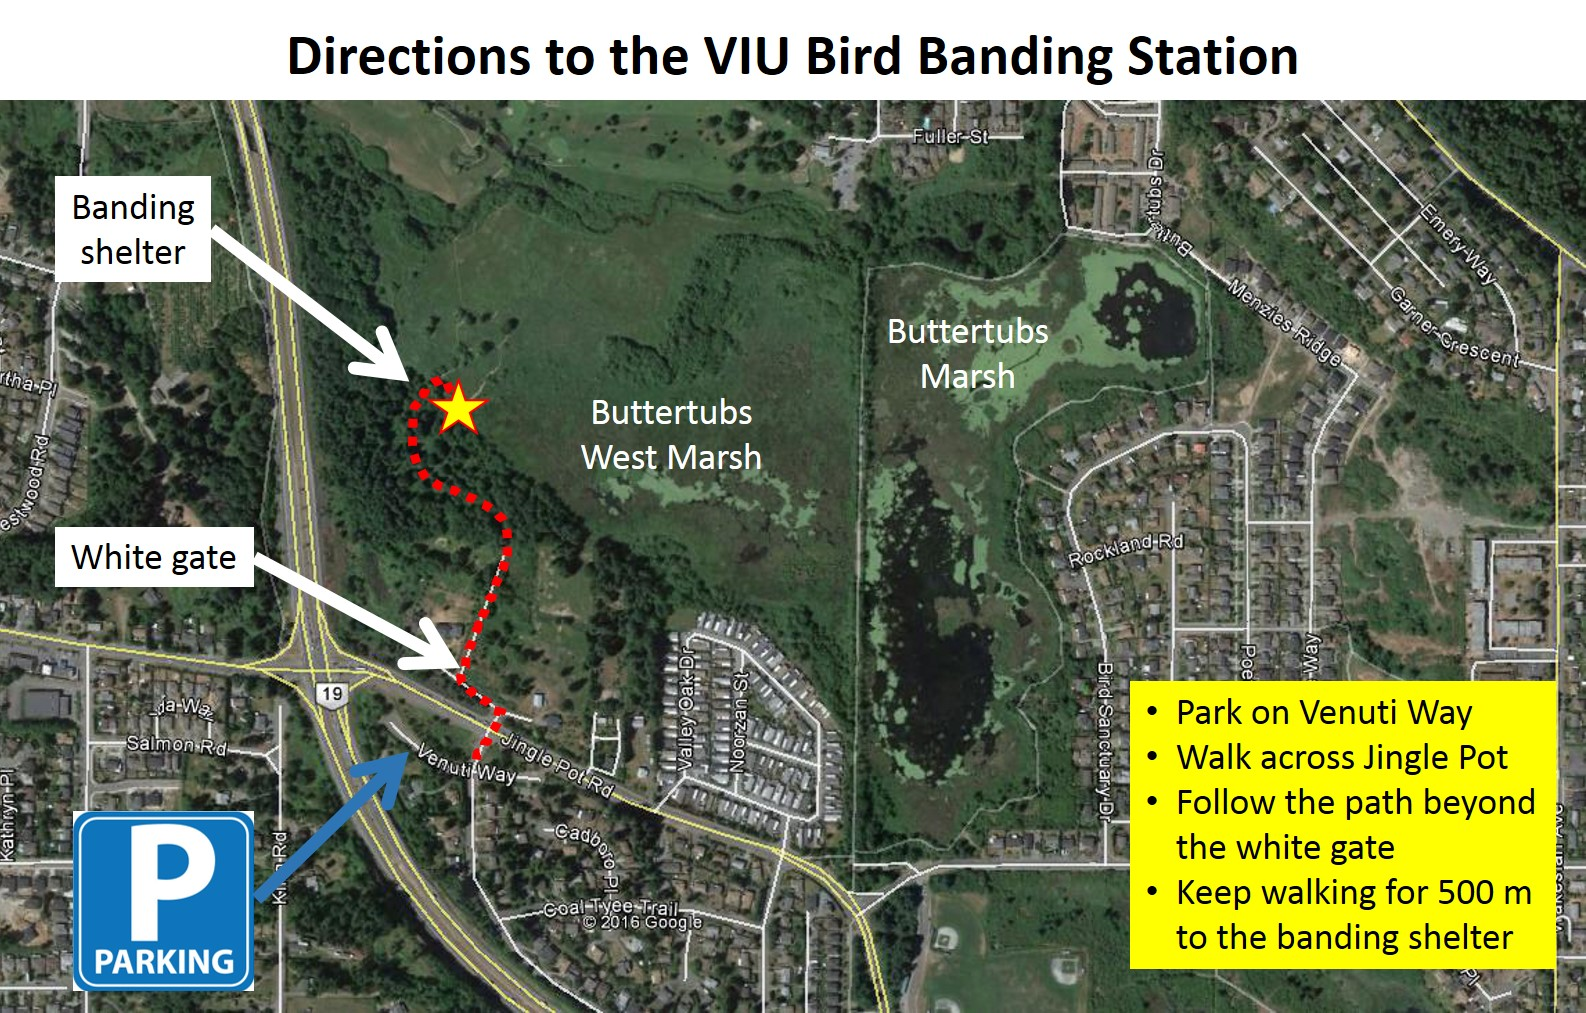 viu-banding-station-directions